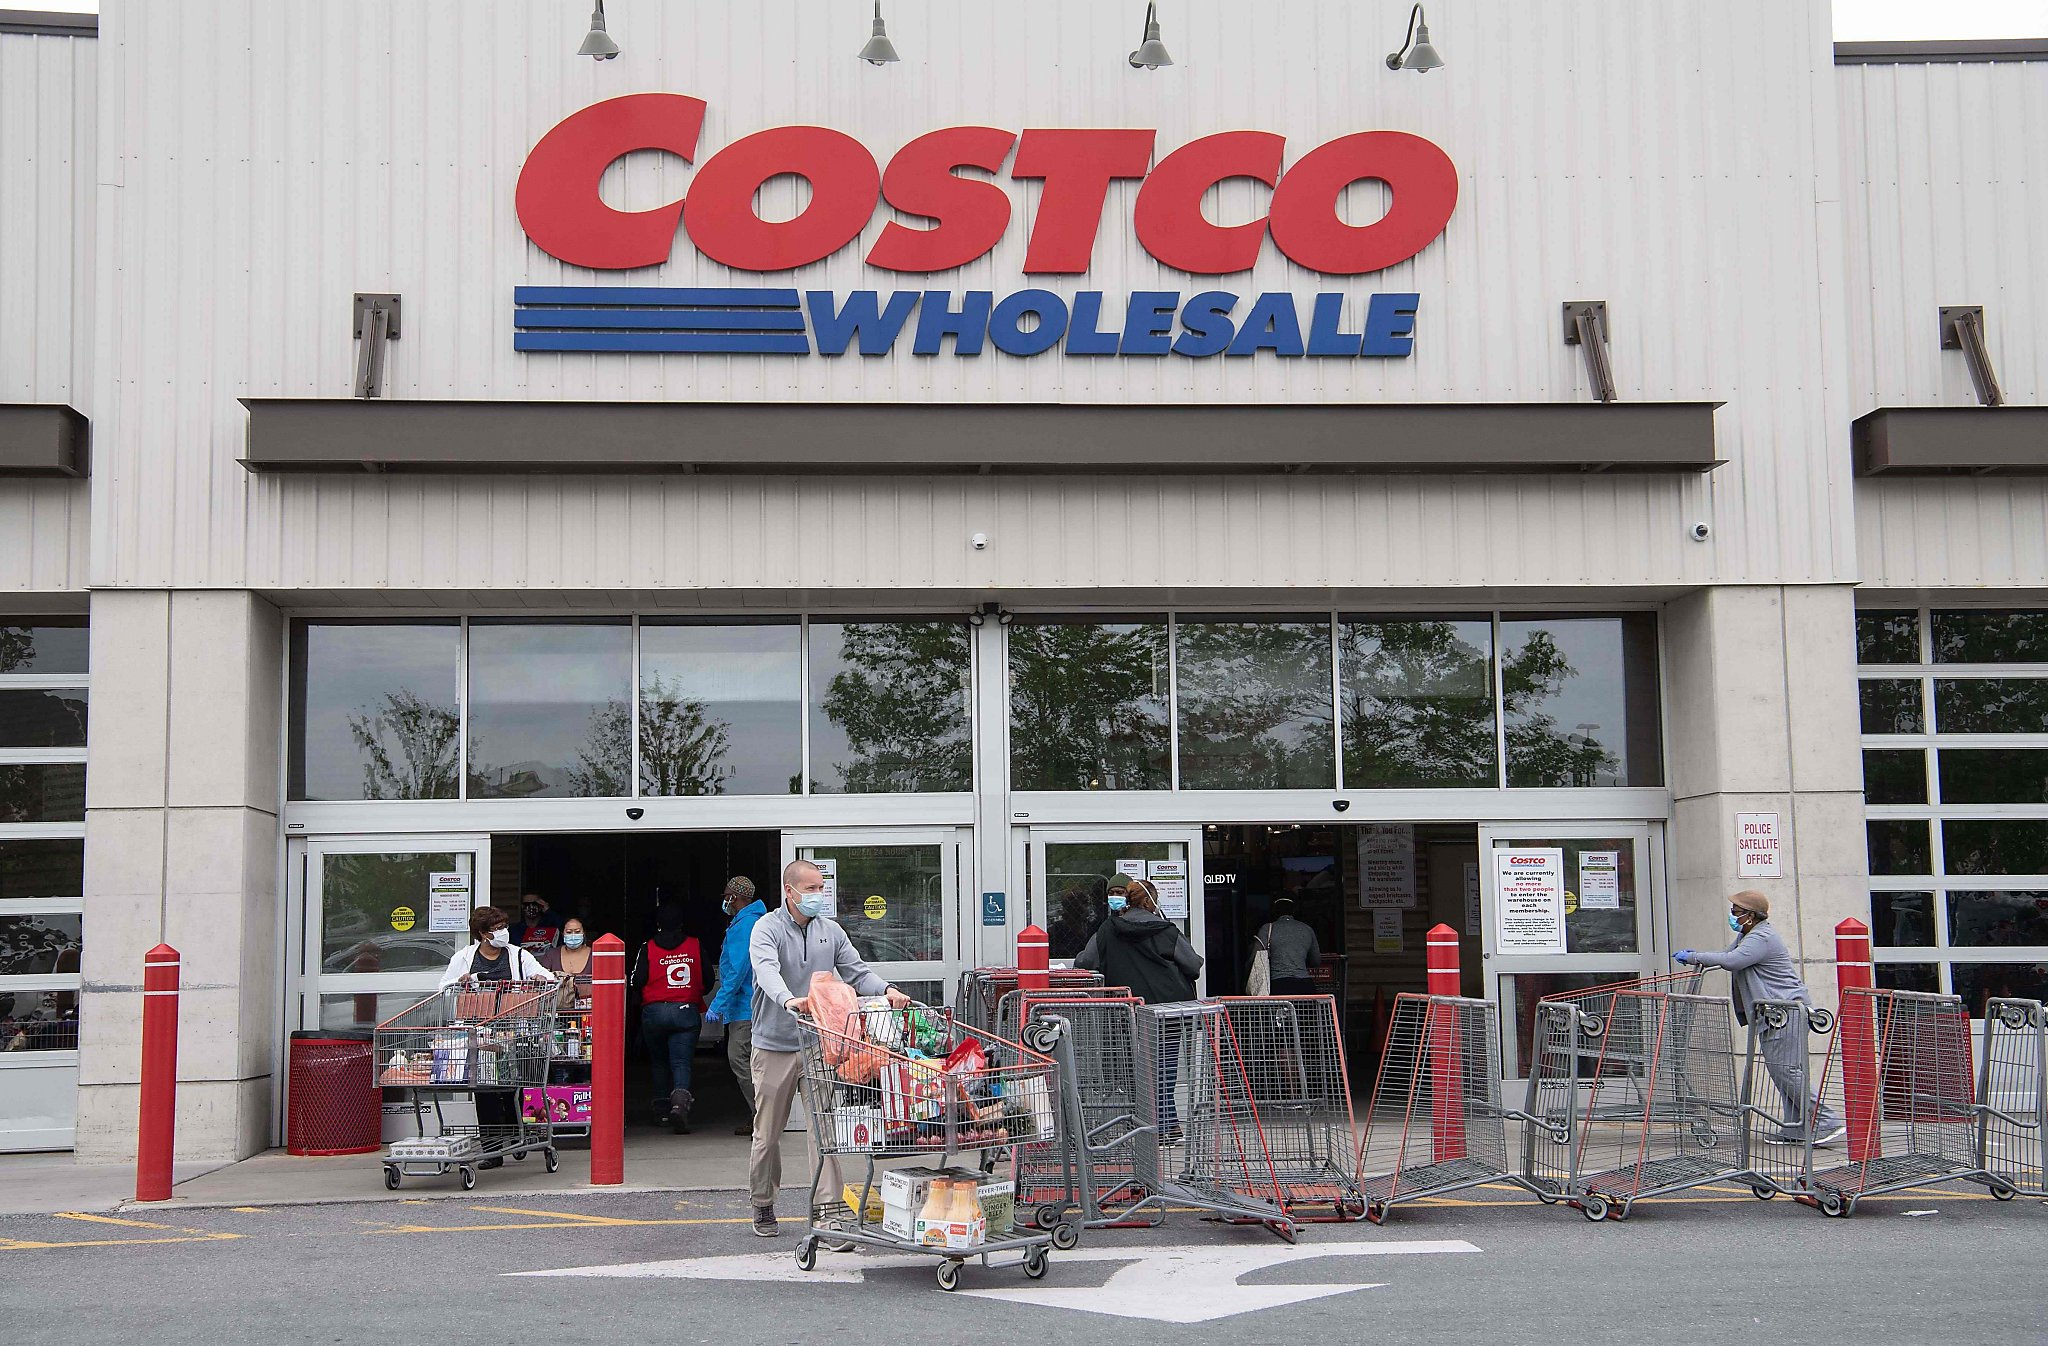 Costco begins offering coronavirus vaccines at Bay Area store - San Francisco Chronicle